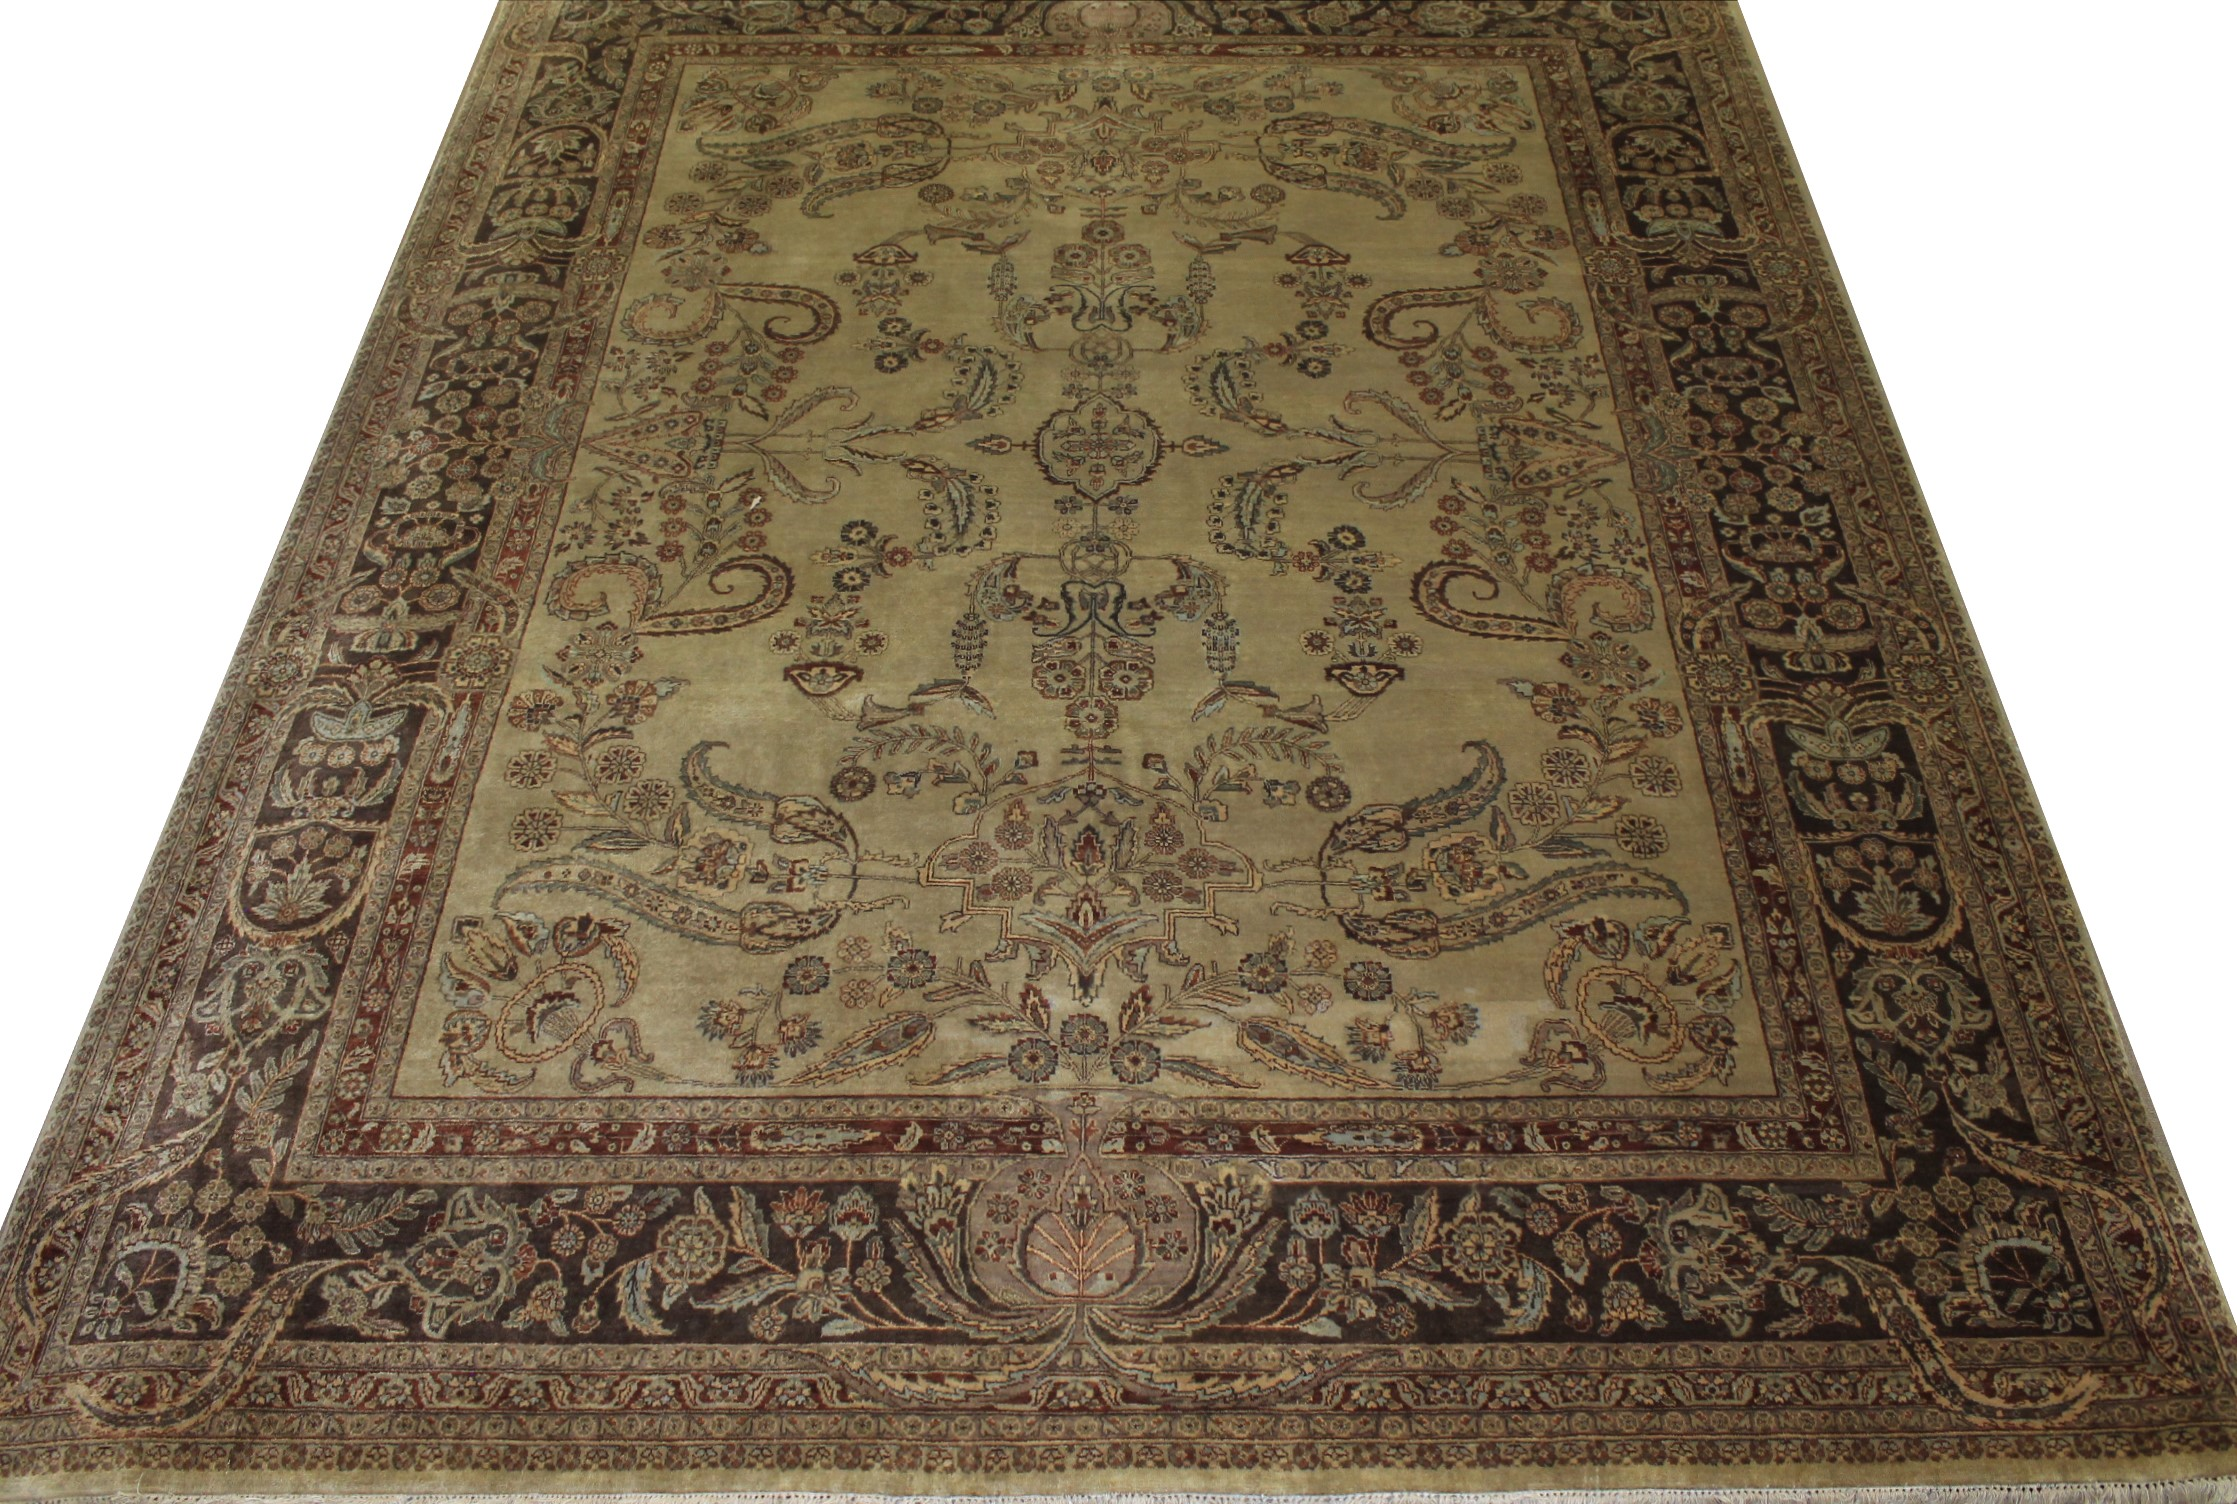 8x10 Traditional Hand Knotted Wool Area Rug - MR11166